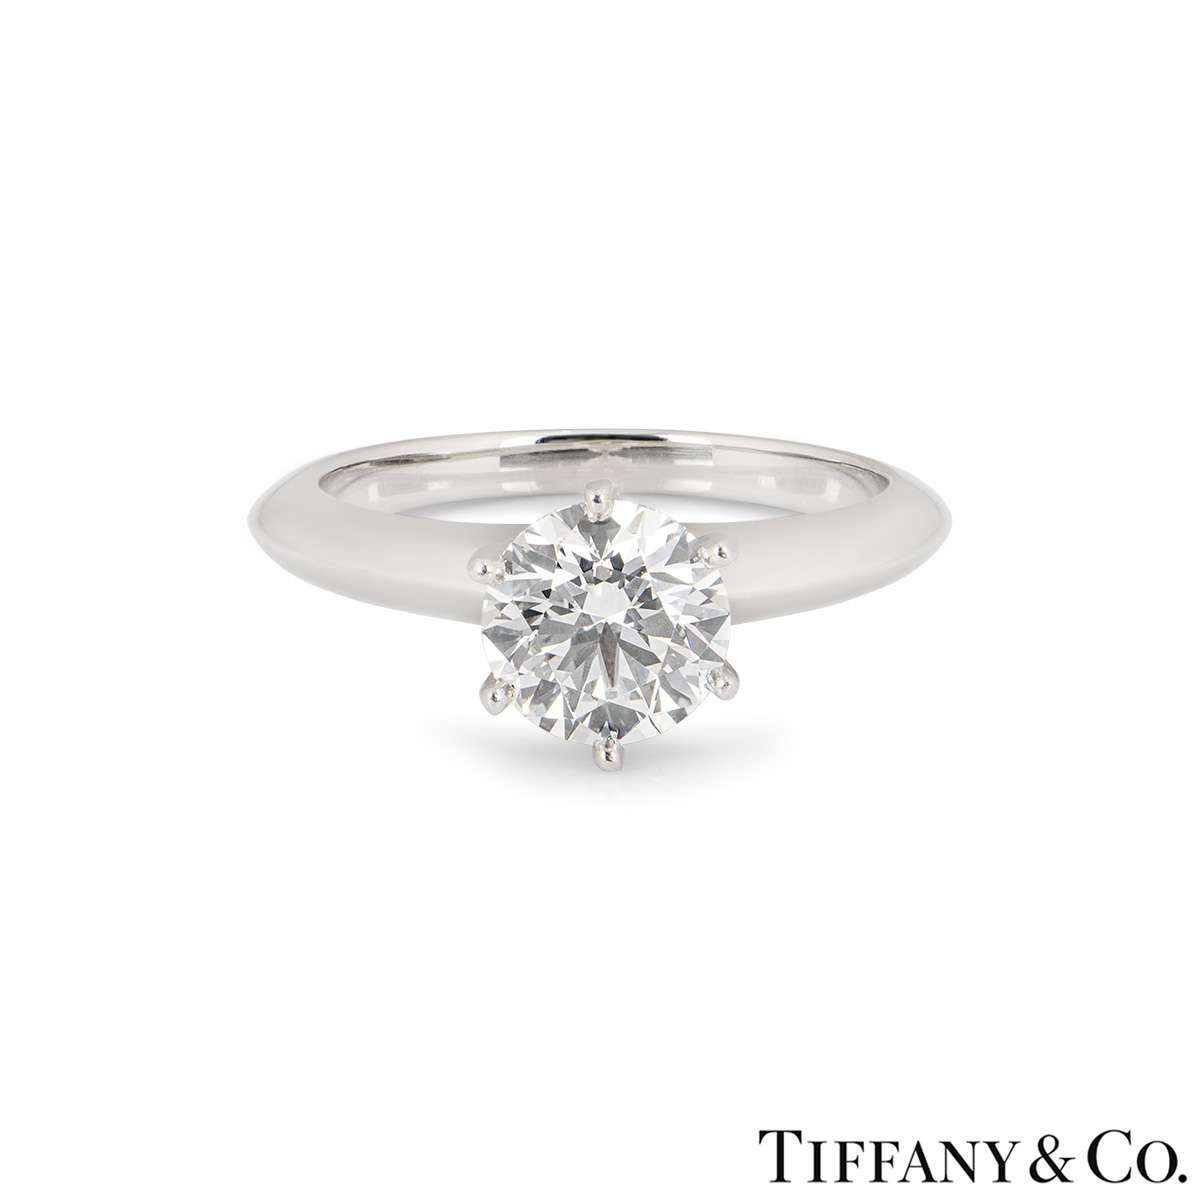 Tiffany & Co. Platinum Diamond Setting Ring 1.31ct H/VS1